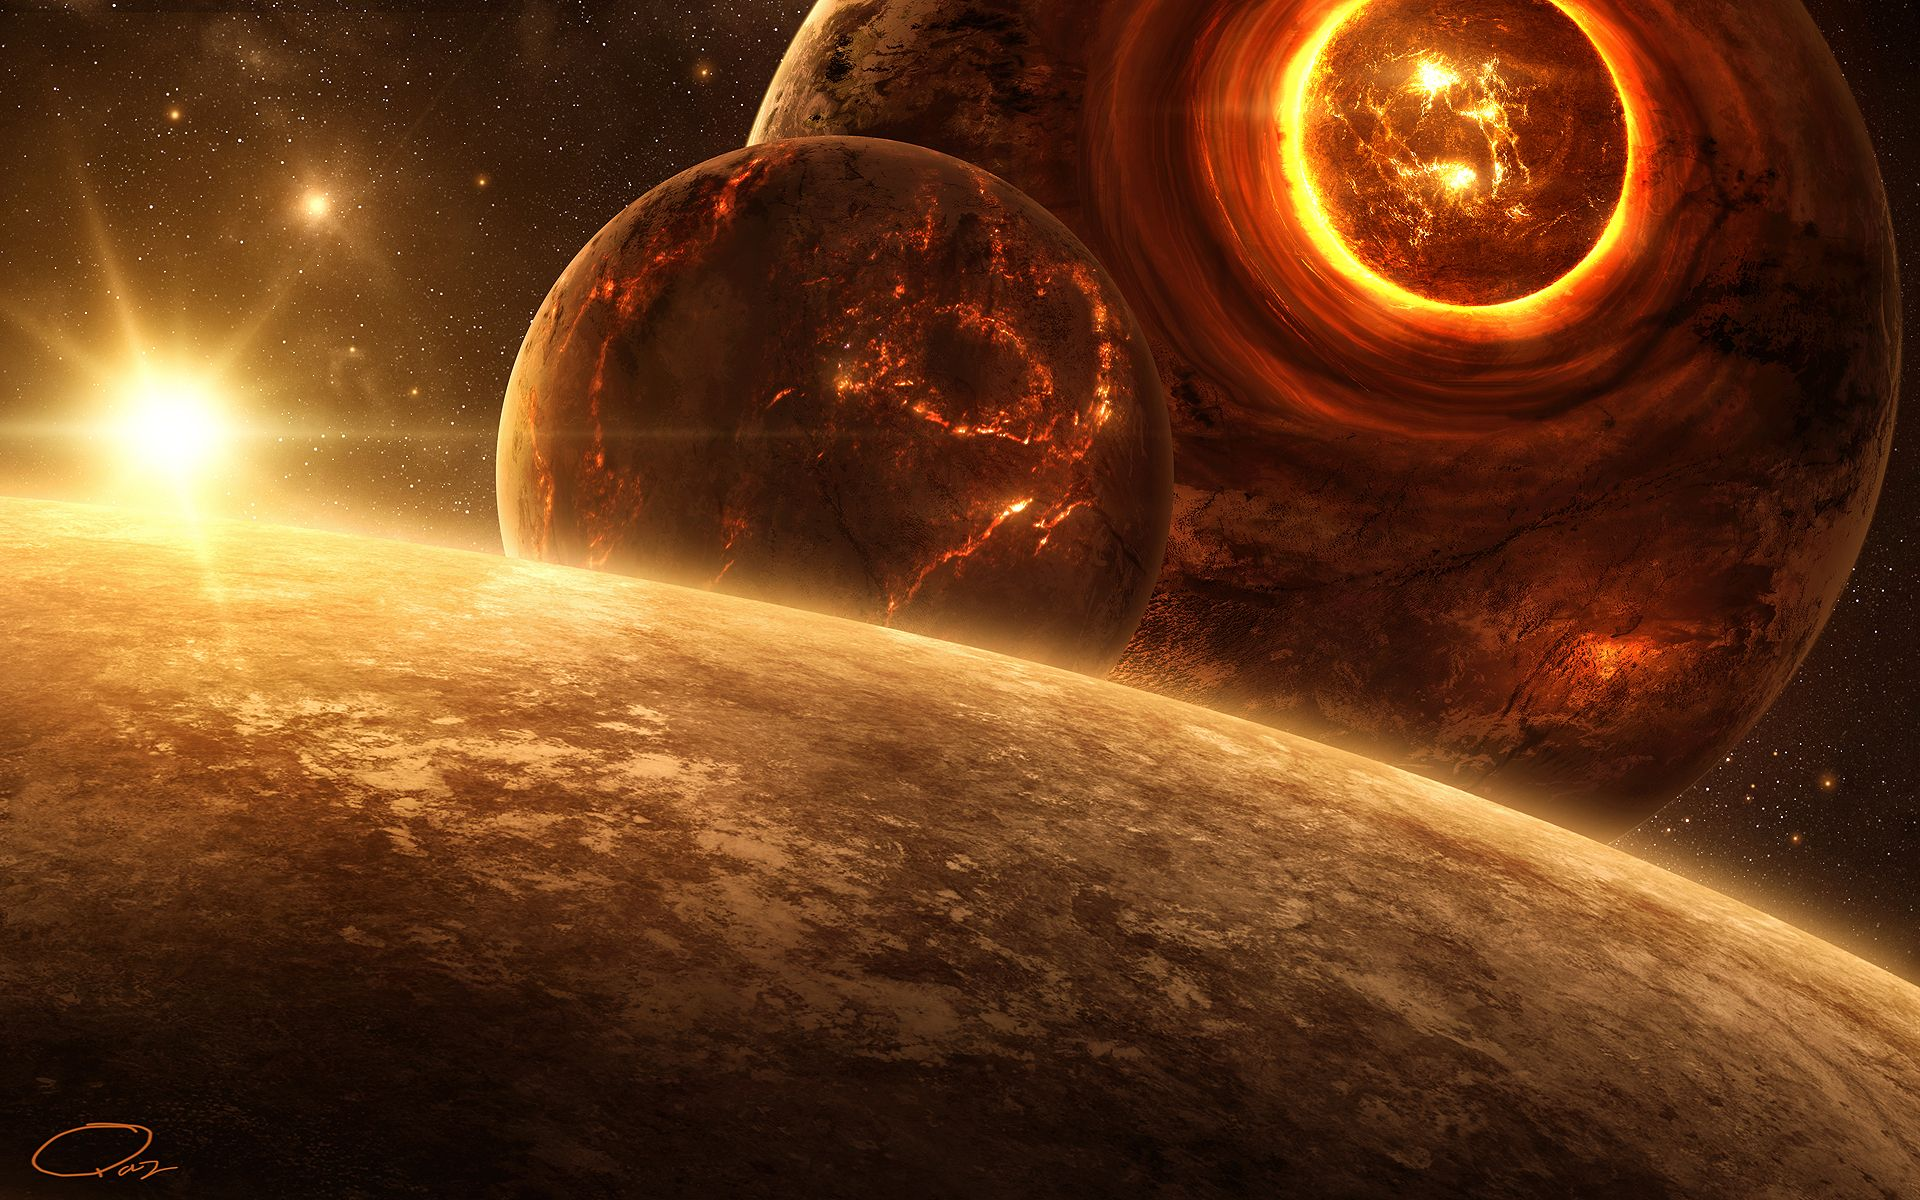 wallpaper art, qauz, planet, lava, break, star, moon wallpapers